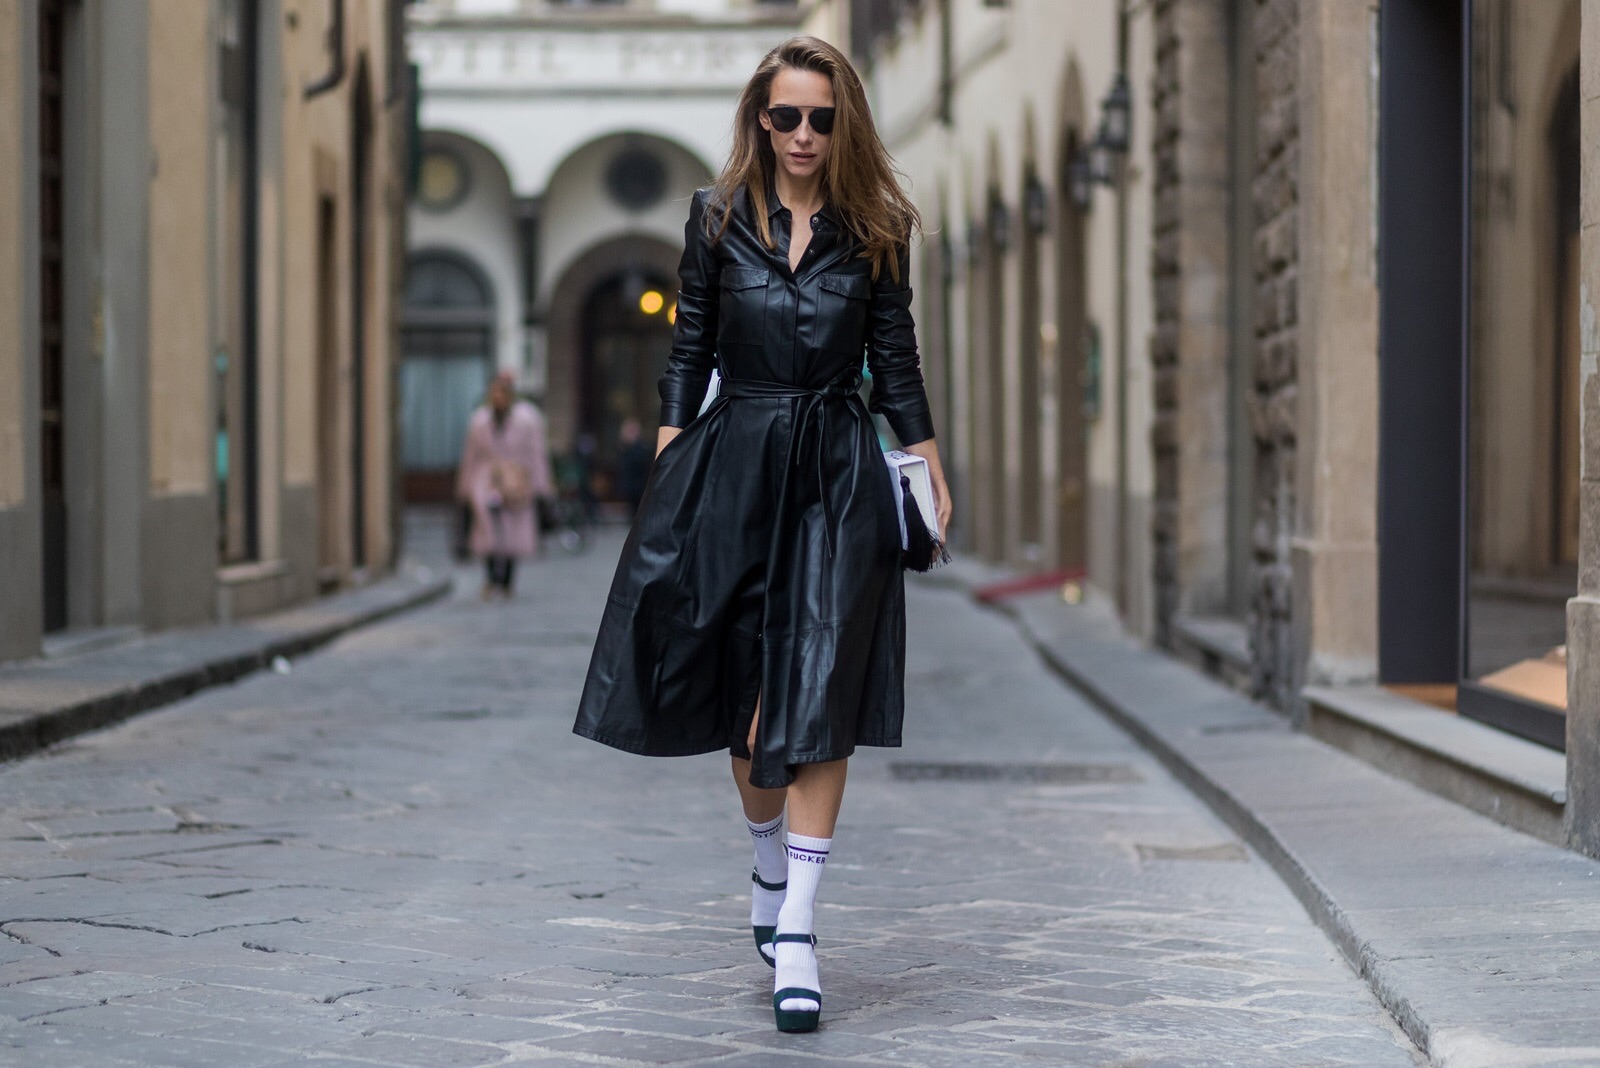 2fed9b94 ... wearing · FLORENCE, ITALY - JANUARY 11: German fashion blogger and  model Alexandra Lapp, ...